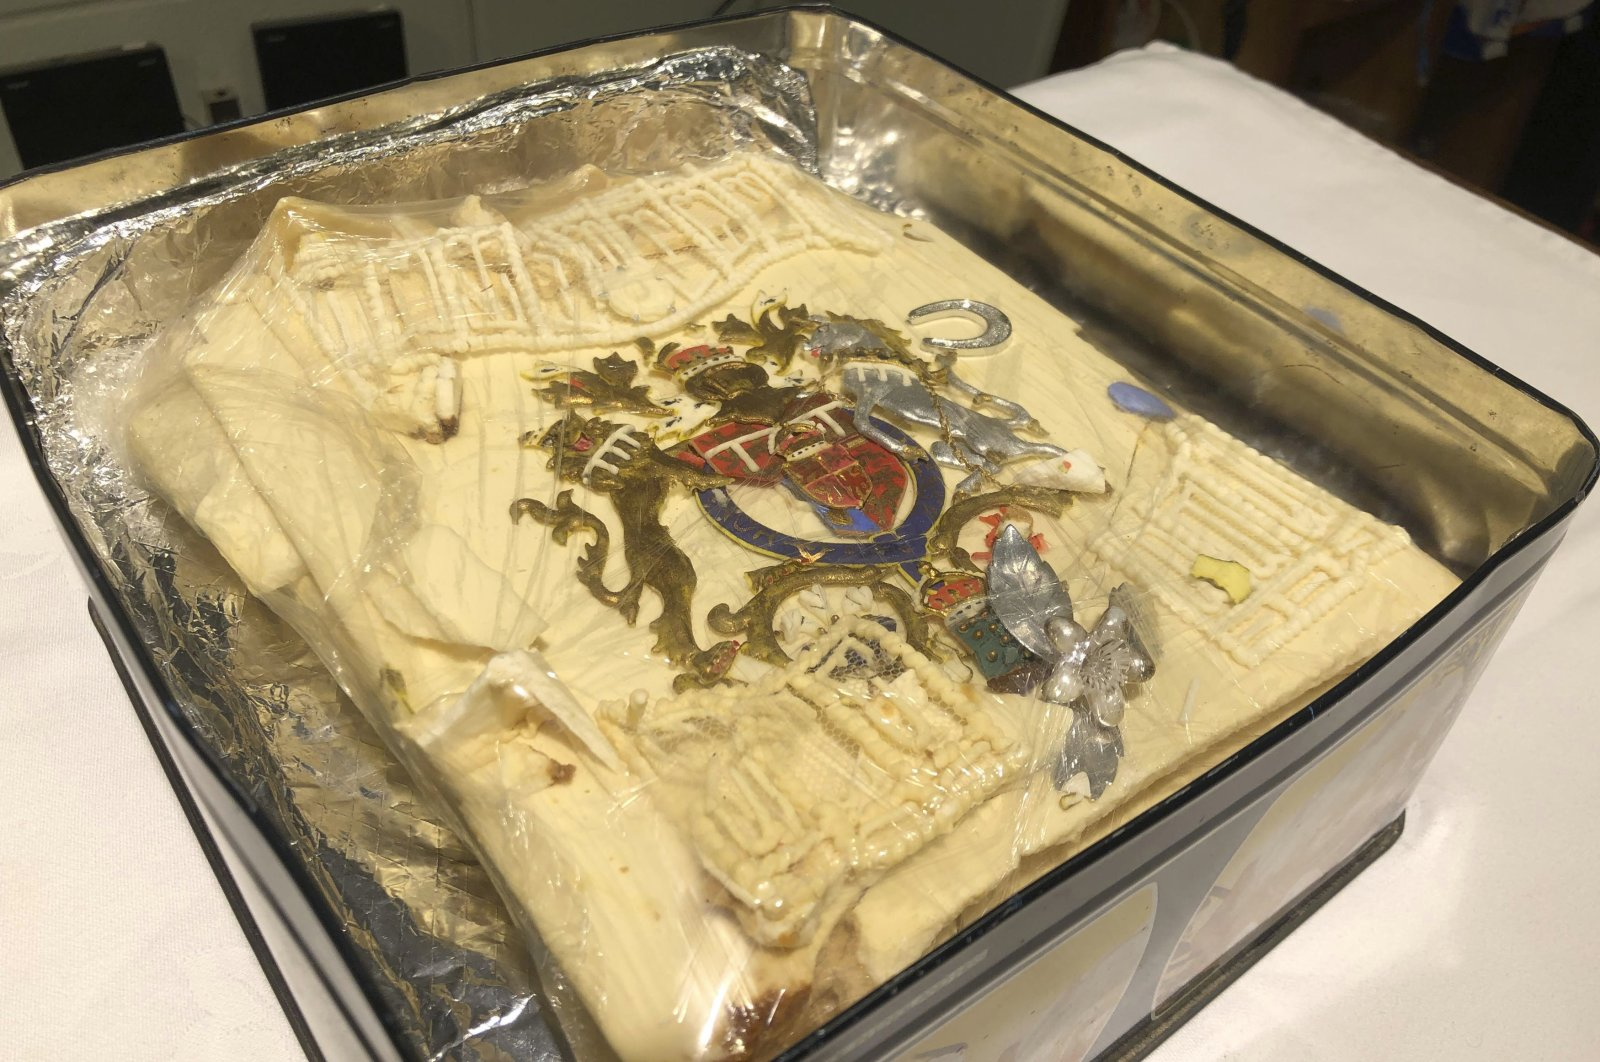 The tin containing the plastic-wrapped slice of cake from one of the 23 official wedding cakes made for the Royal Wedding of Prince Charles and Lady Diana Spencer, Dominic Winter Auctioneers in Cirencester, England, Aug. 11, 2021. (Claire Hayhurst/PA via AP)